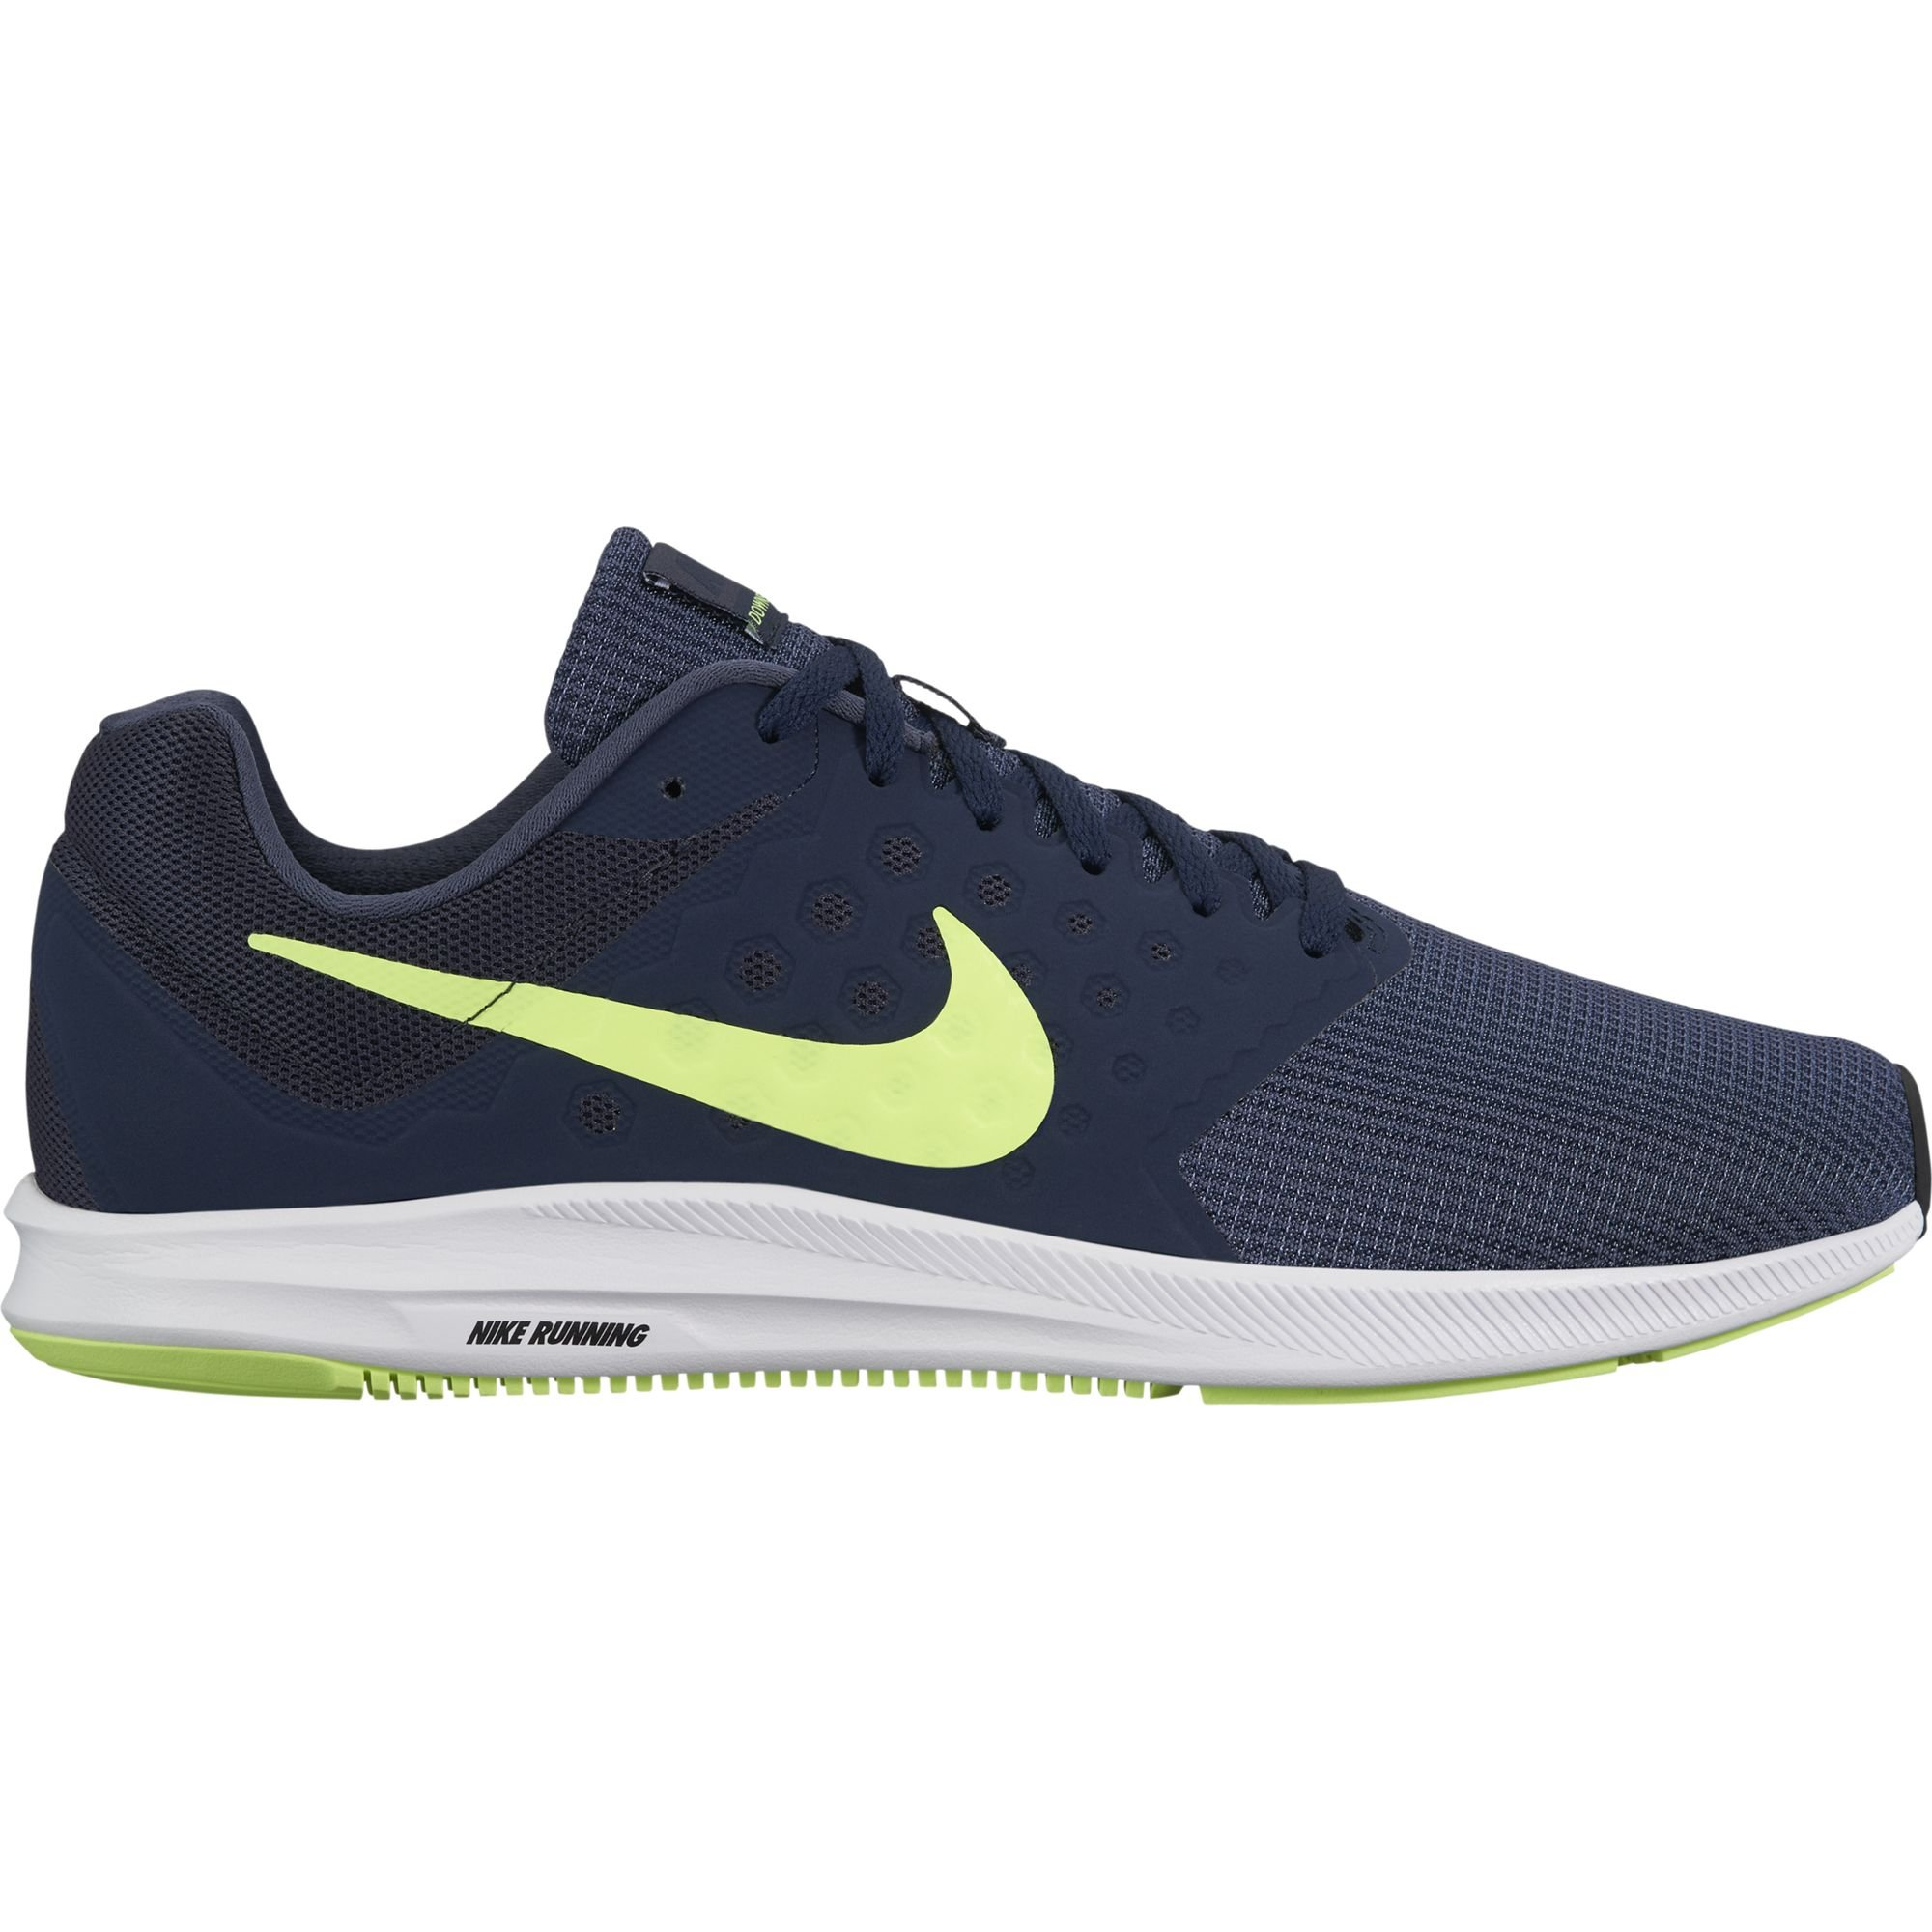 de972a9489032 Galleon - Nike Men s Downshifter 7 Running Shoe Thunder Blue Volt  Glow Obsidian Black Size 12 M US